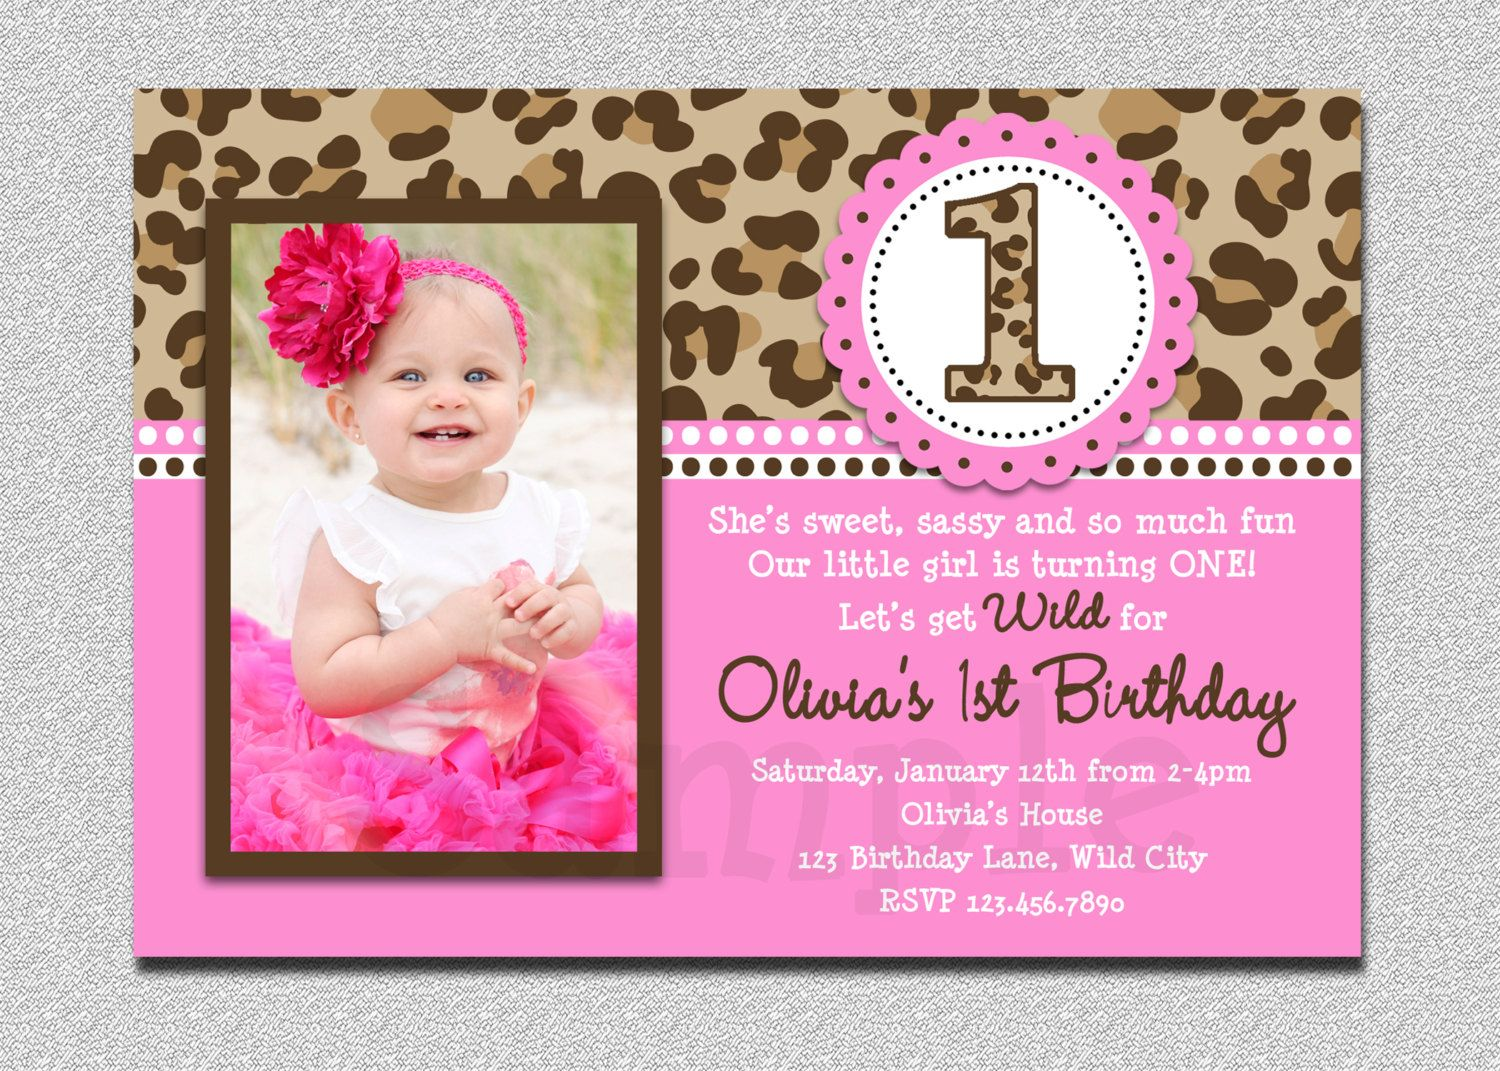 Leopard birthday invitation leopard 1st birthday invitation leopard birthday invitation leopard 1st birthday invitation printable 1500 via etsy filmwisefo Images